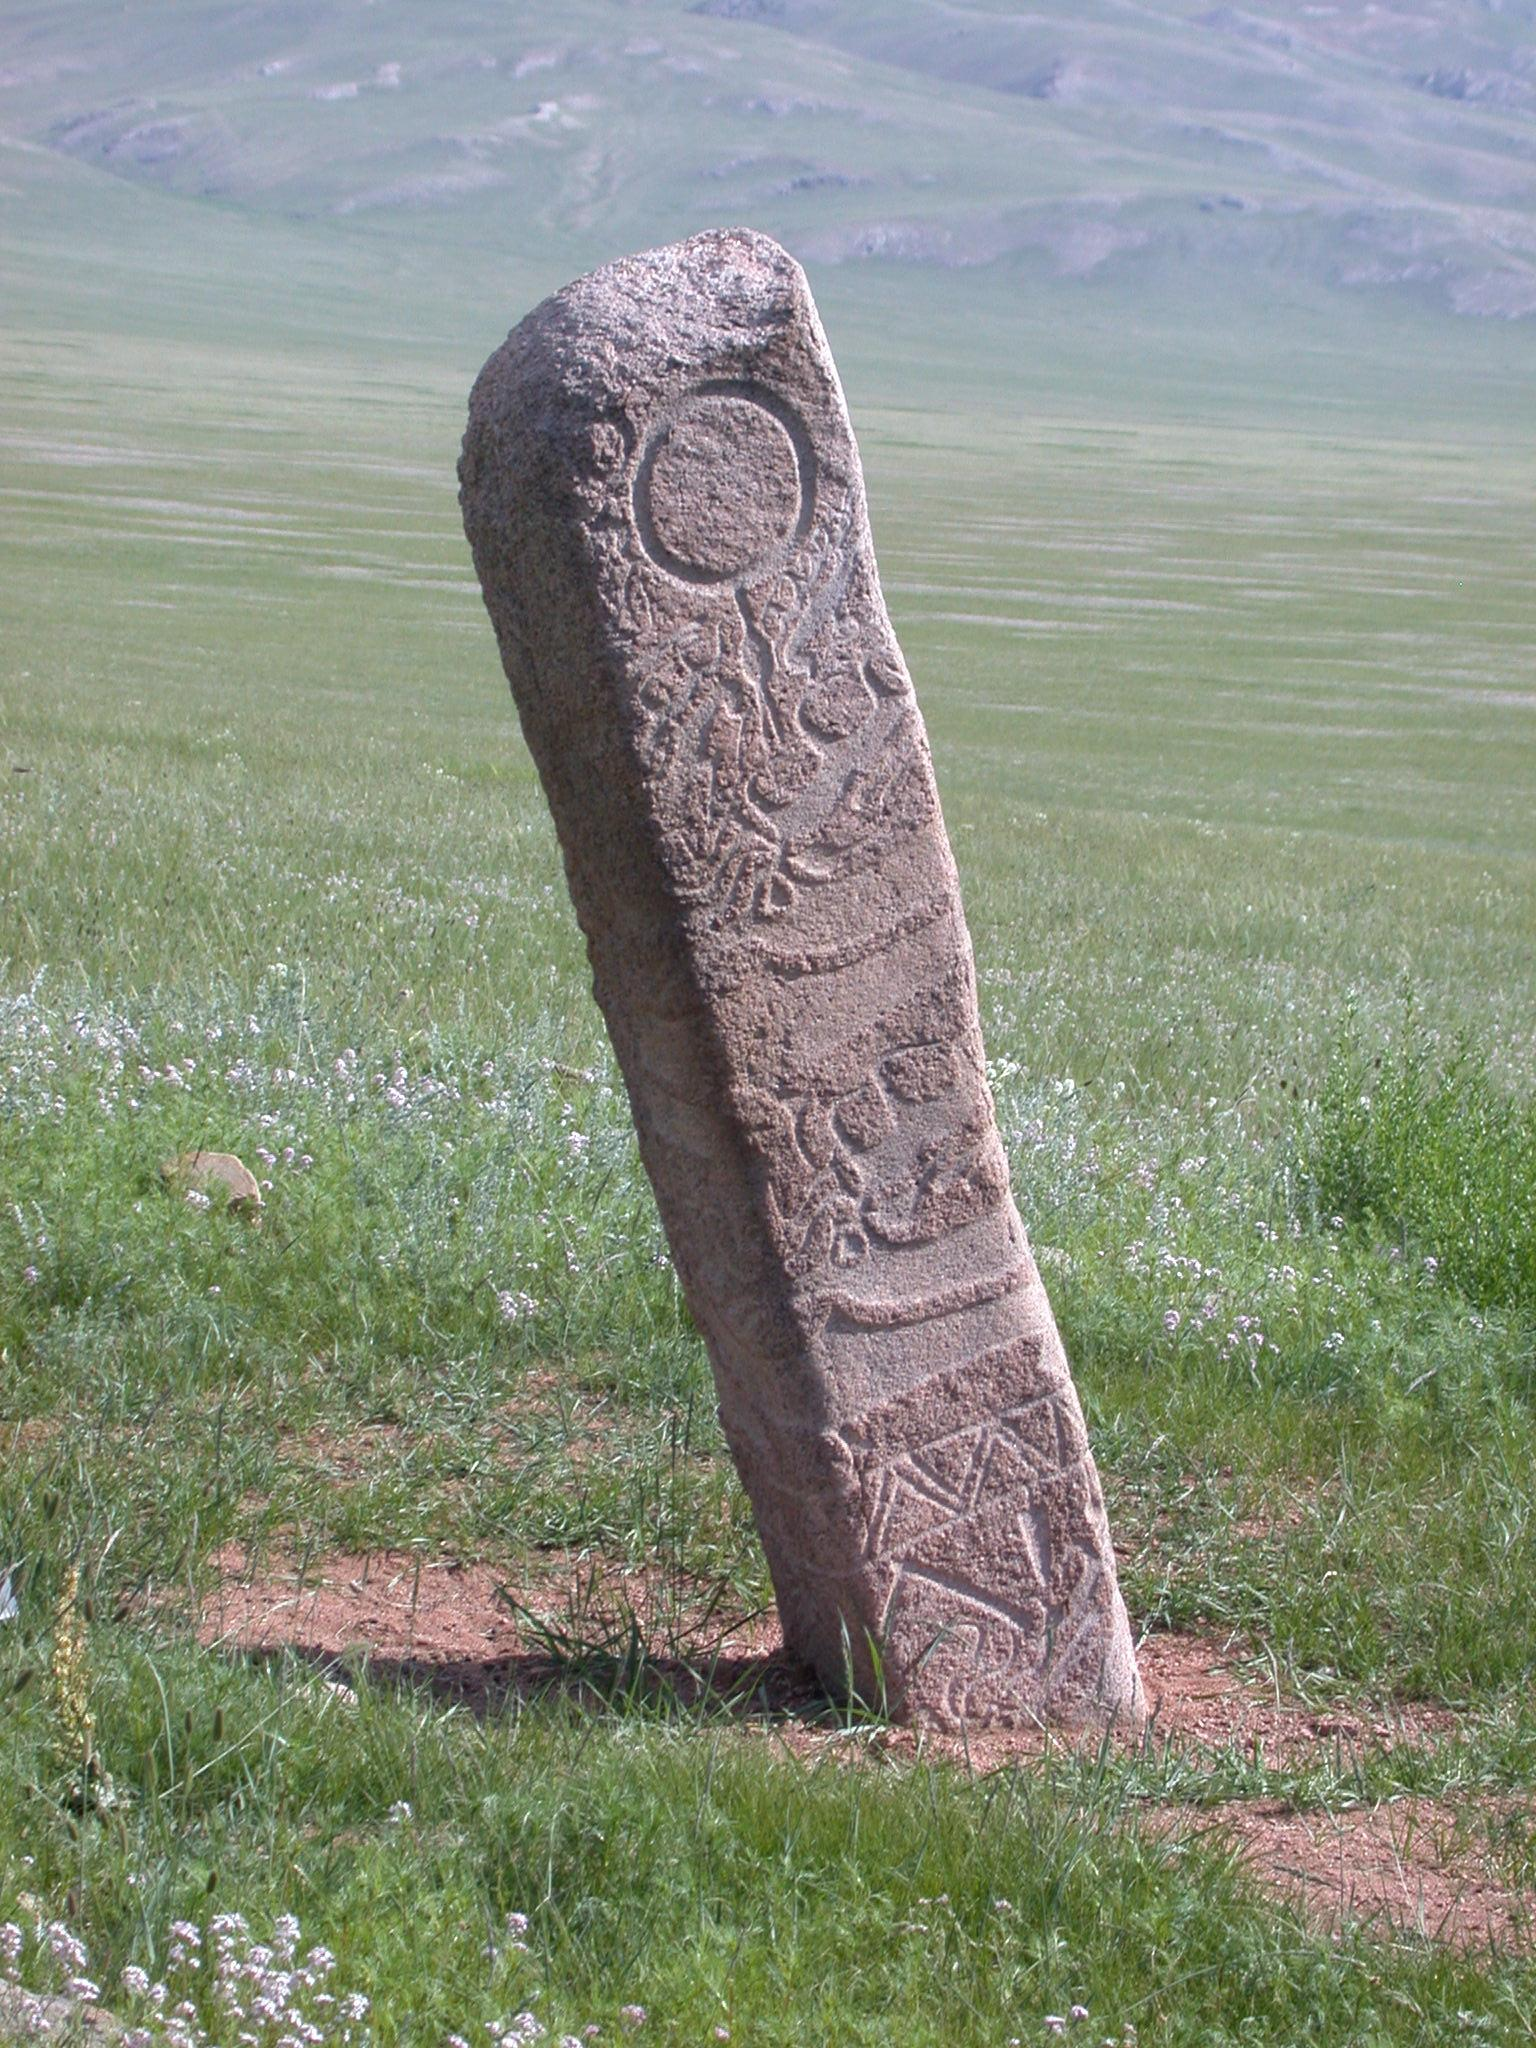 Deer Stone 5 illustrates a 'Classic Mongolian' anthropometric deer stone with its ear-ring, encircling deer-bird figures on the torso, and warrior's belt with hanging weapons. Later this site was heavily damaged by looters. Photo credit: William Fitzhugh.